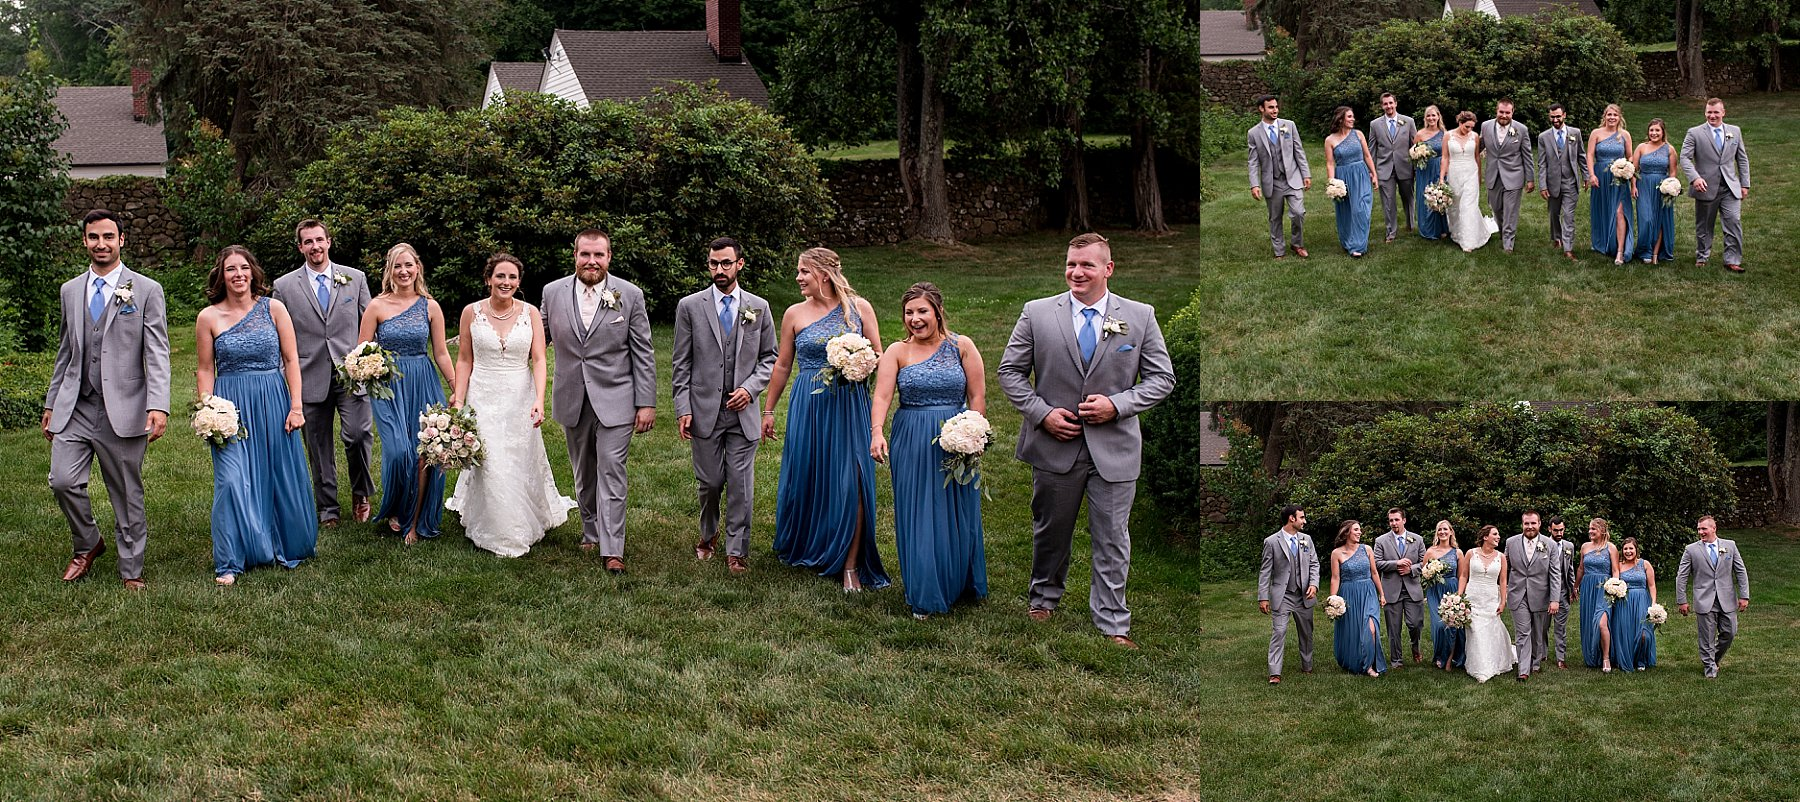 bride and groom with wedding party portriats